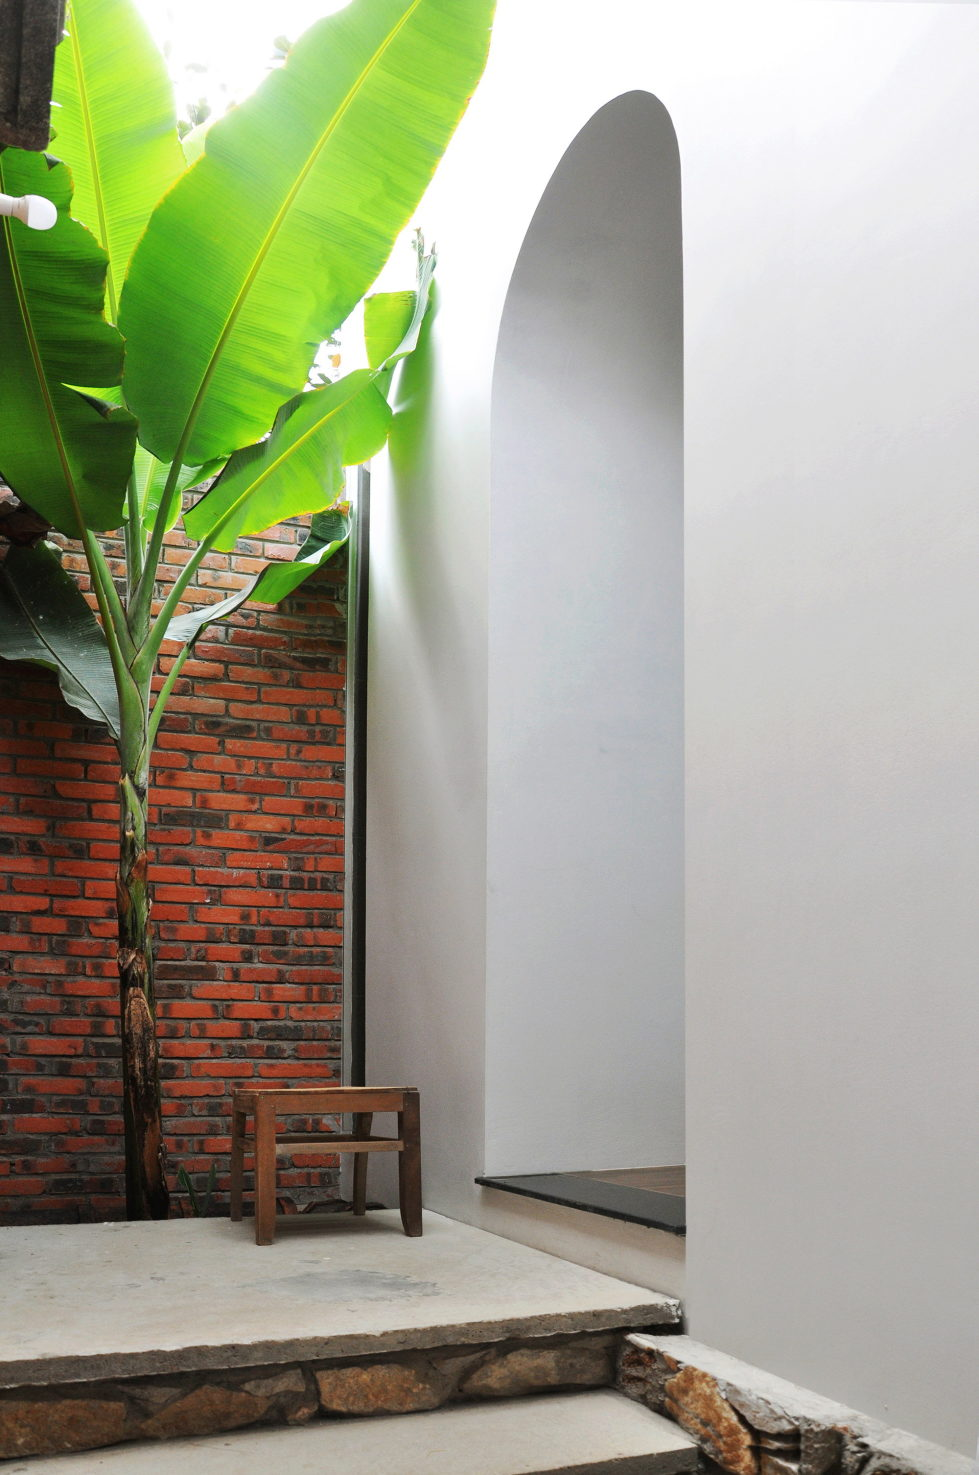 The Shelter Extension Of The Rural Houses Space in Vietnam 7